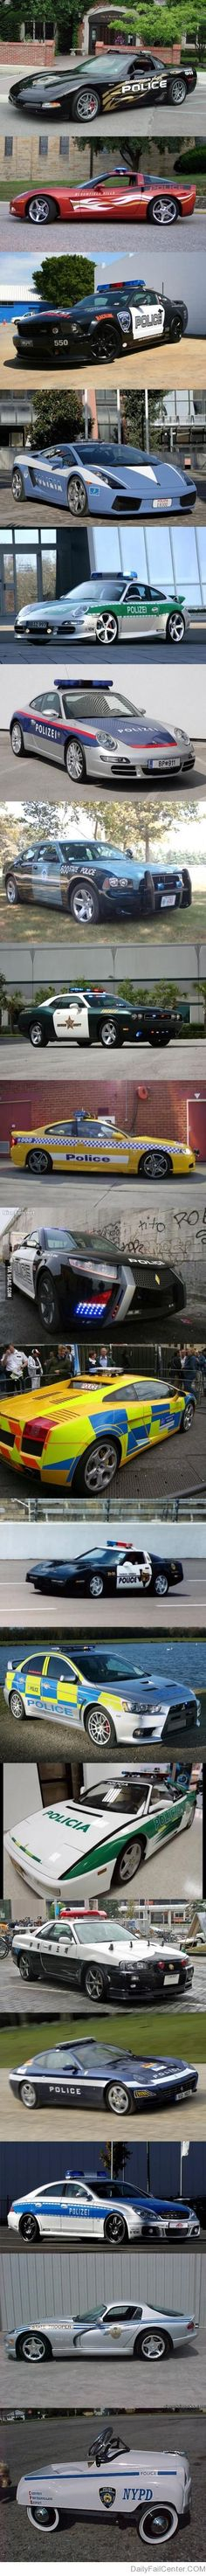 World police car Rescue Vehicles, Police Vehicles, Automobile, Cruiser Motorcycle, Sweet Cars, Emergency Vehicles, Car In The World, Police Cars, Fire Trucks